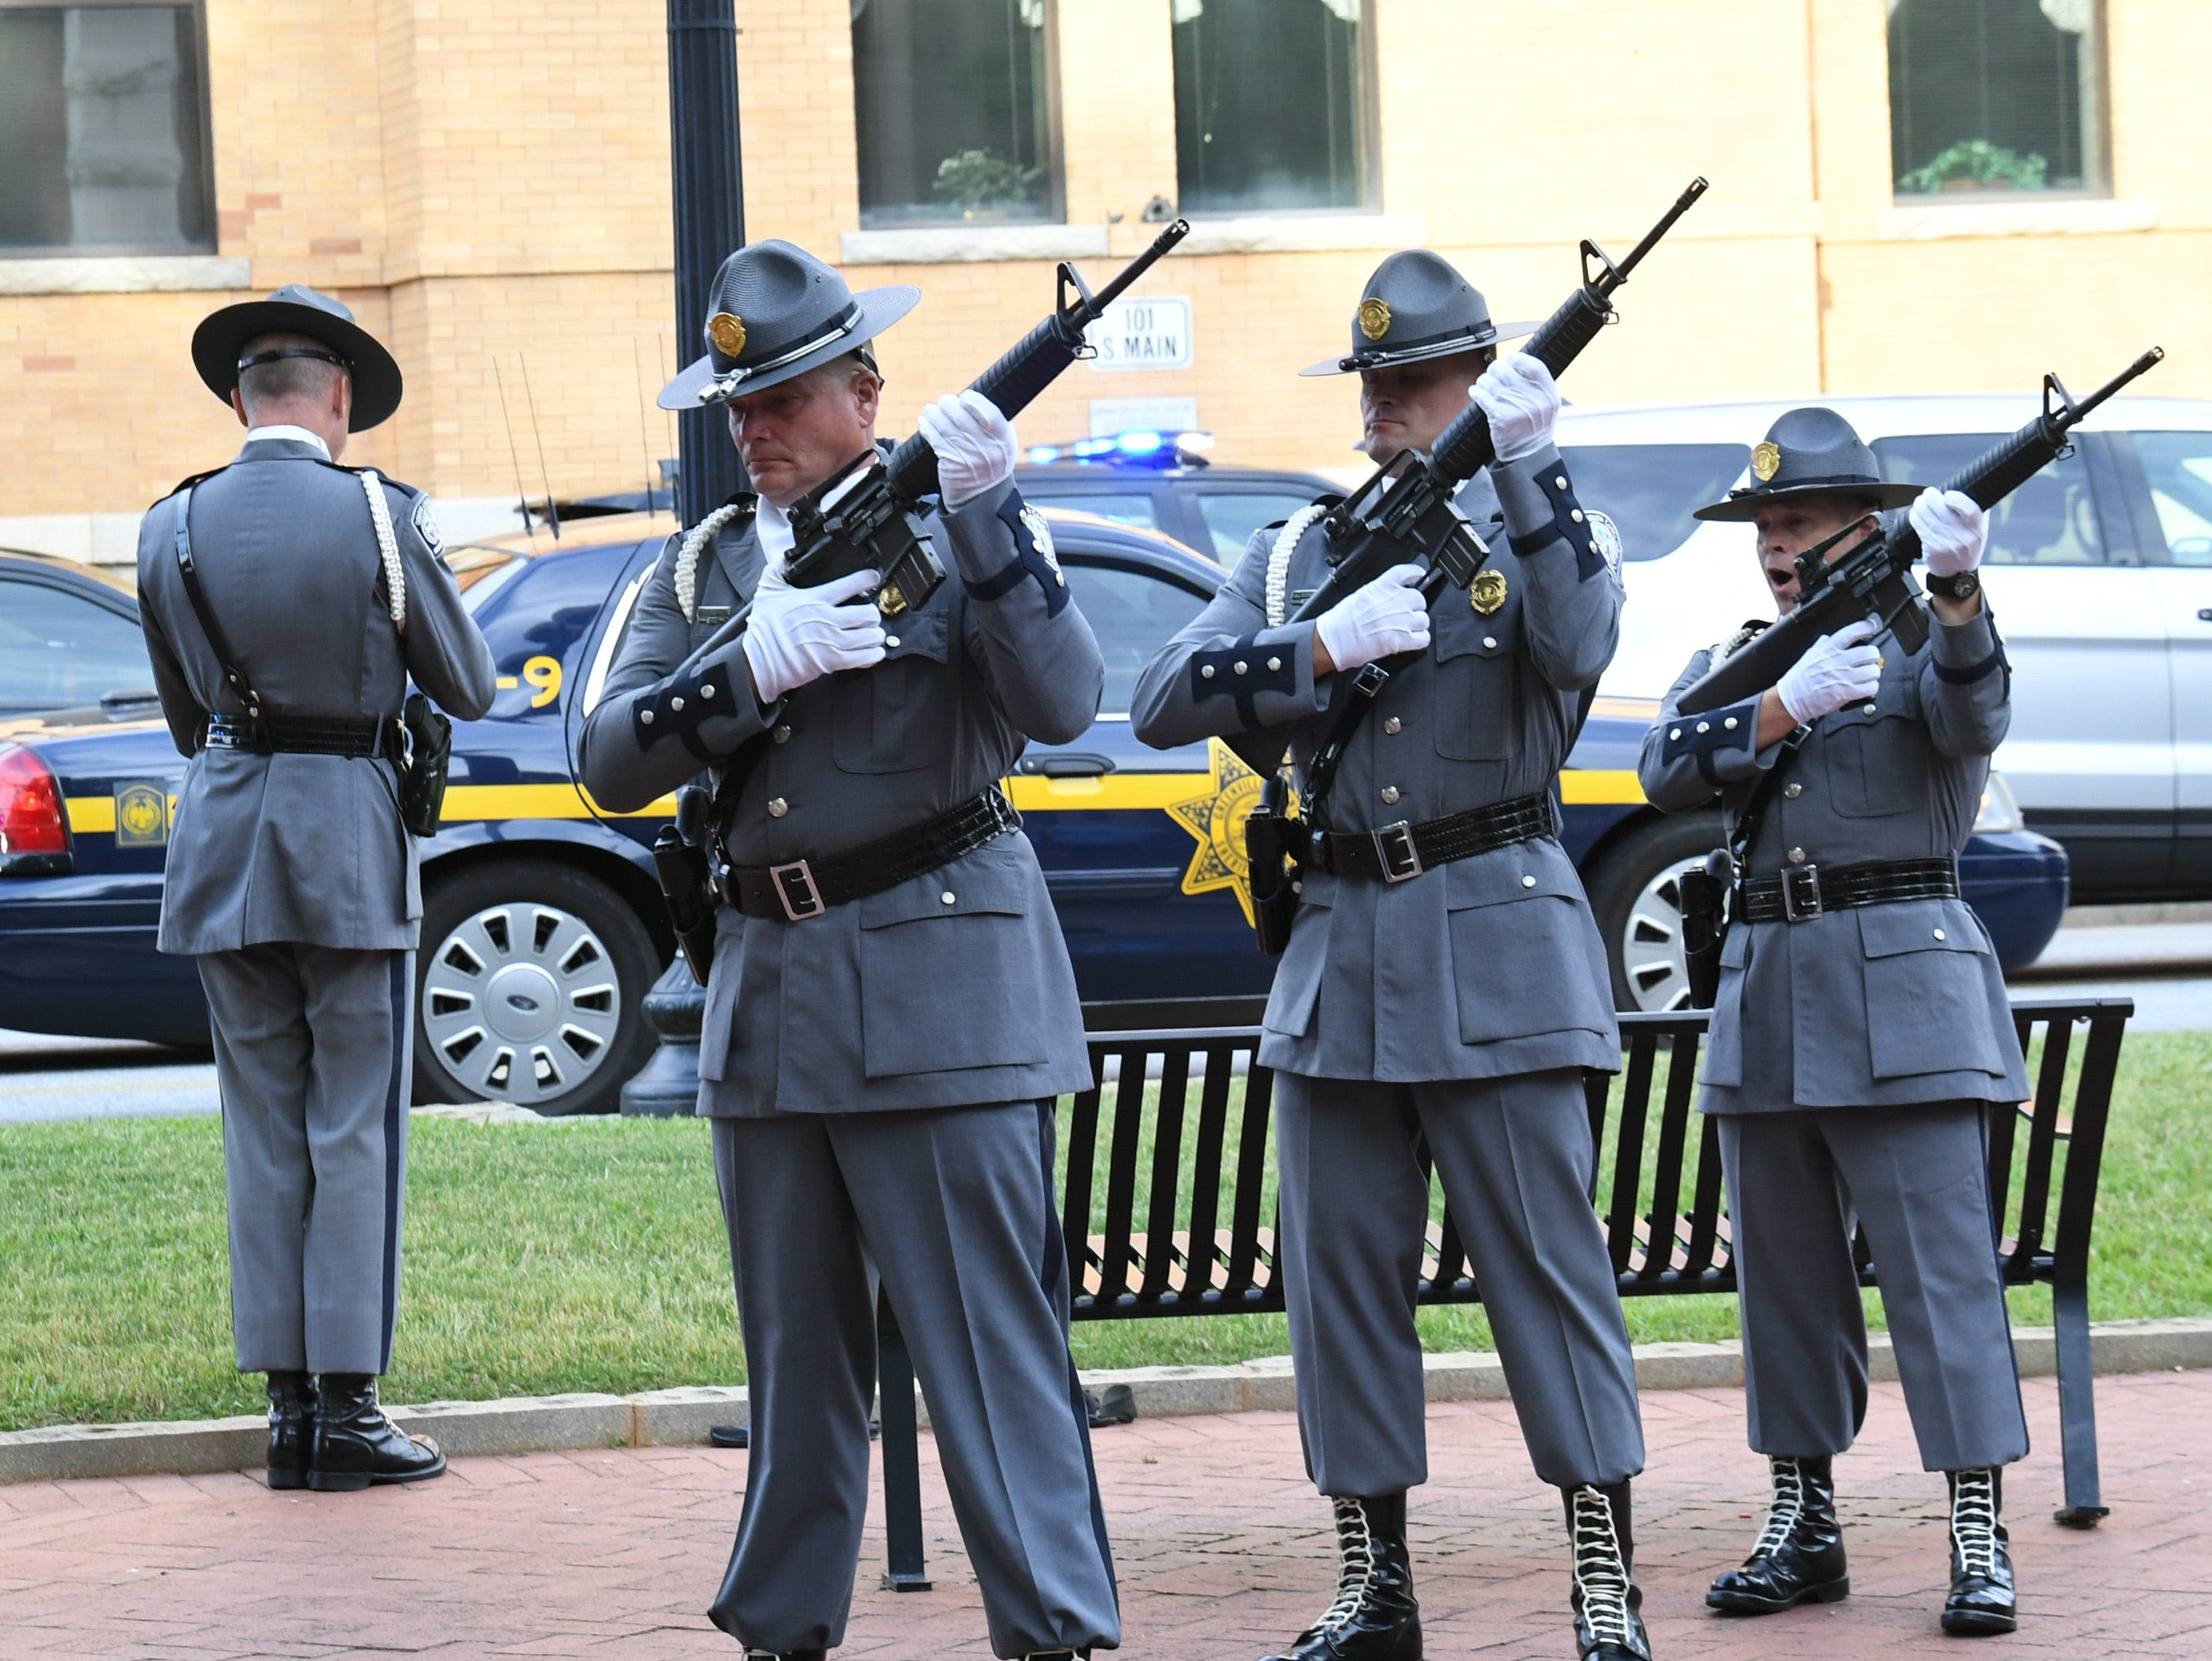 South Carolina Highway Patrol Honor Guard during the 2019 Peace Officer Memorial Service Wednesday May 15, 2019, in front of the Anderson County courthouse. People attended to help honor the lives of officers lost in the line of duty.